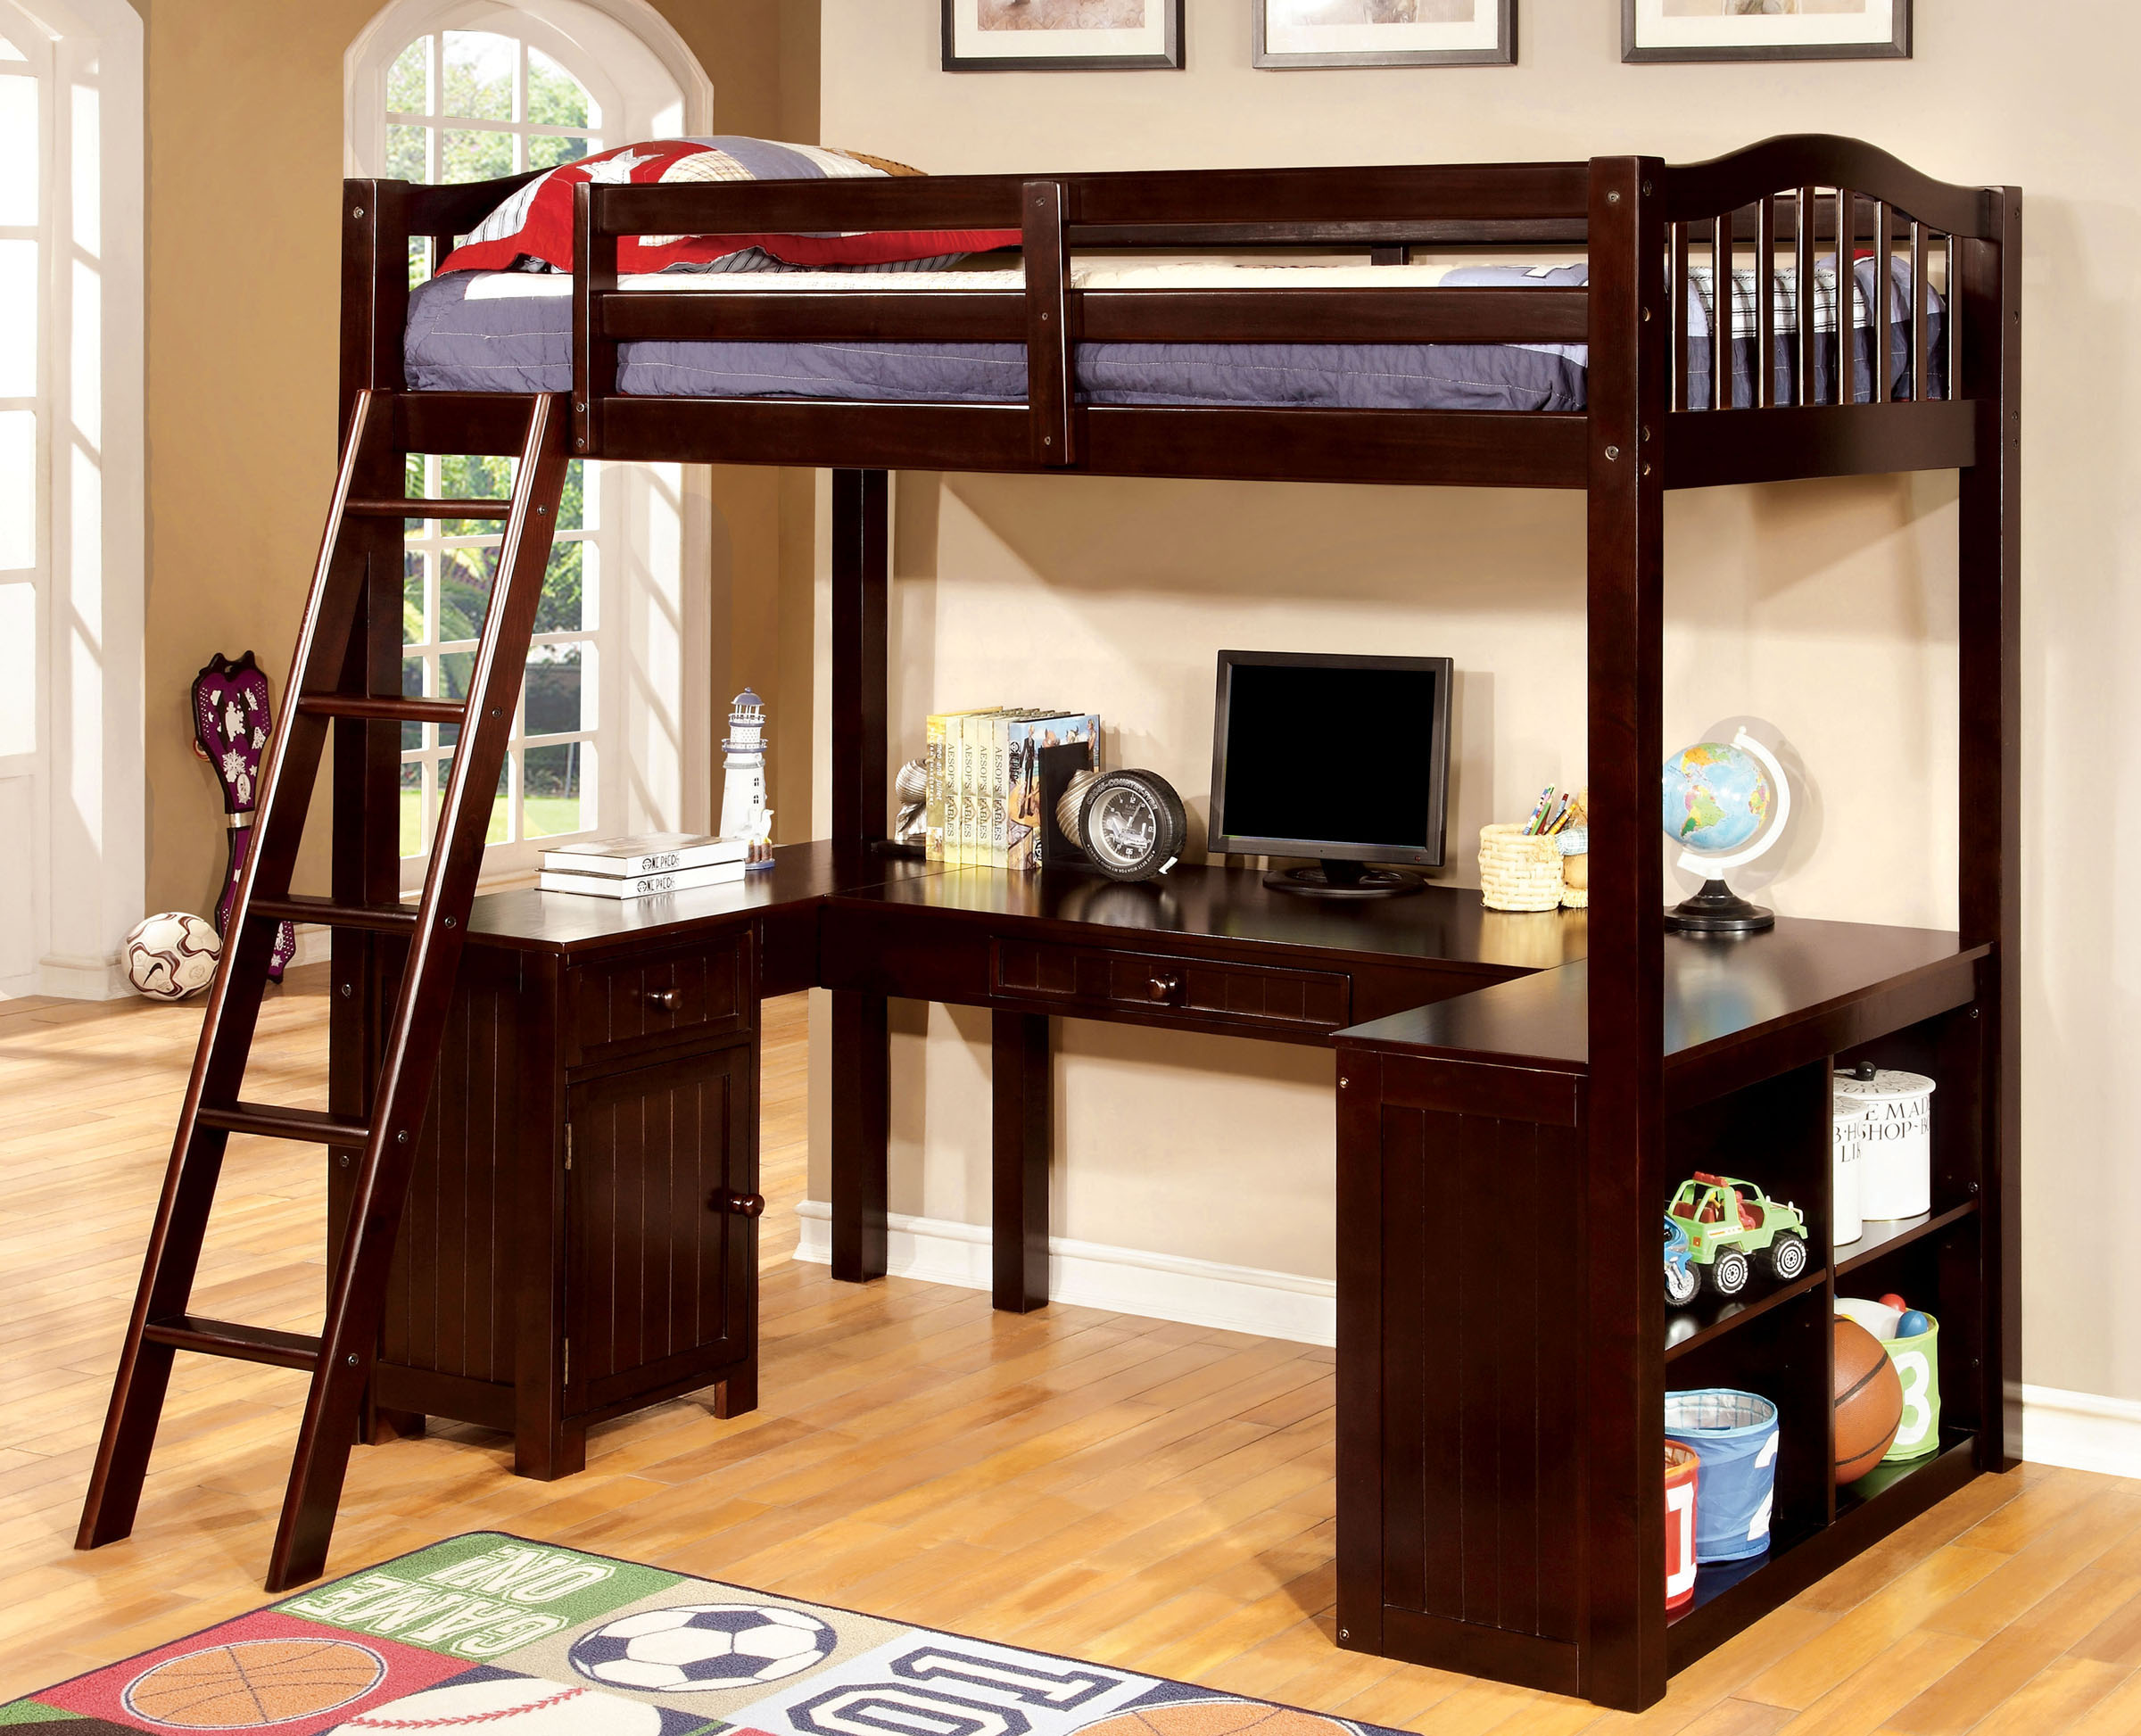 Bunk beds loft beds back to school basics Bedroom furniture for college students